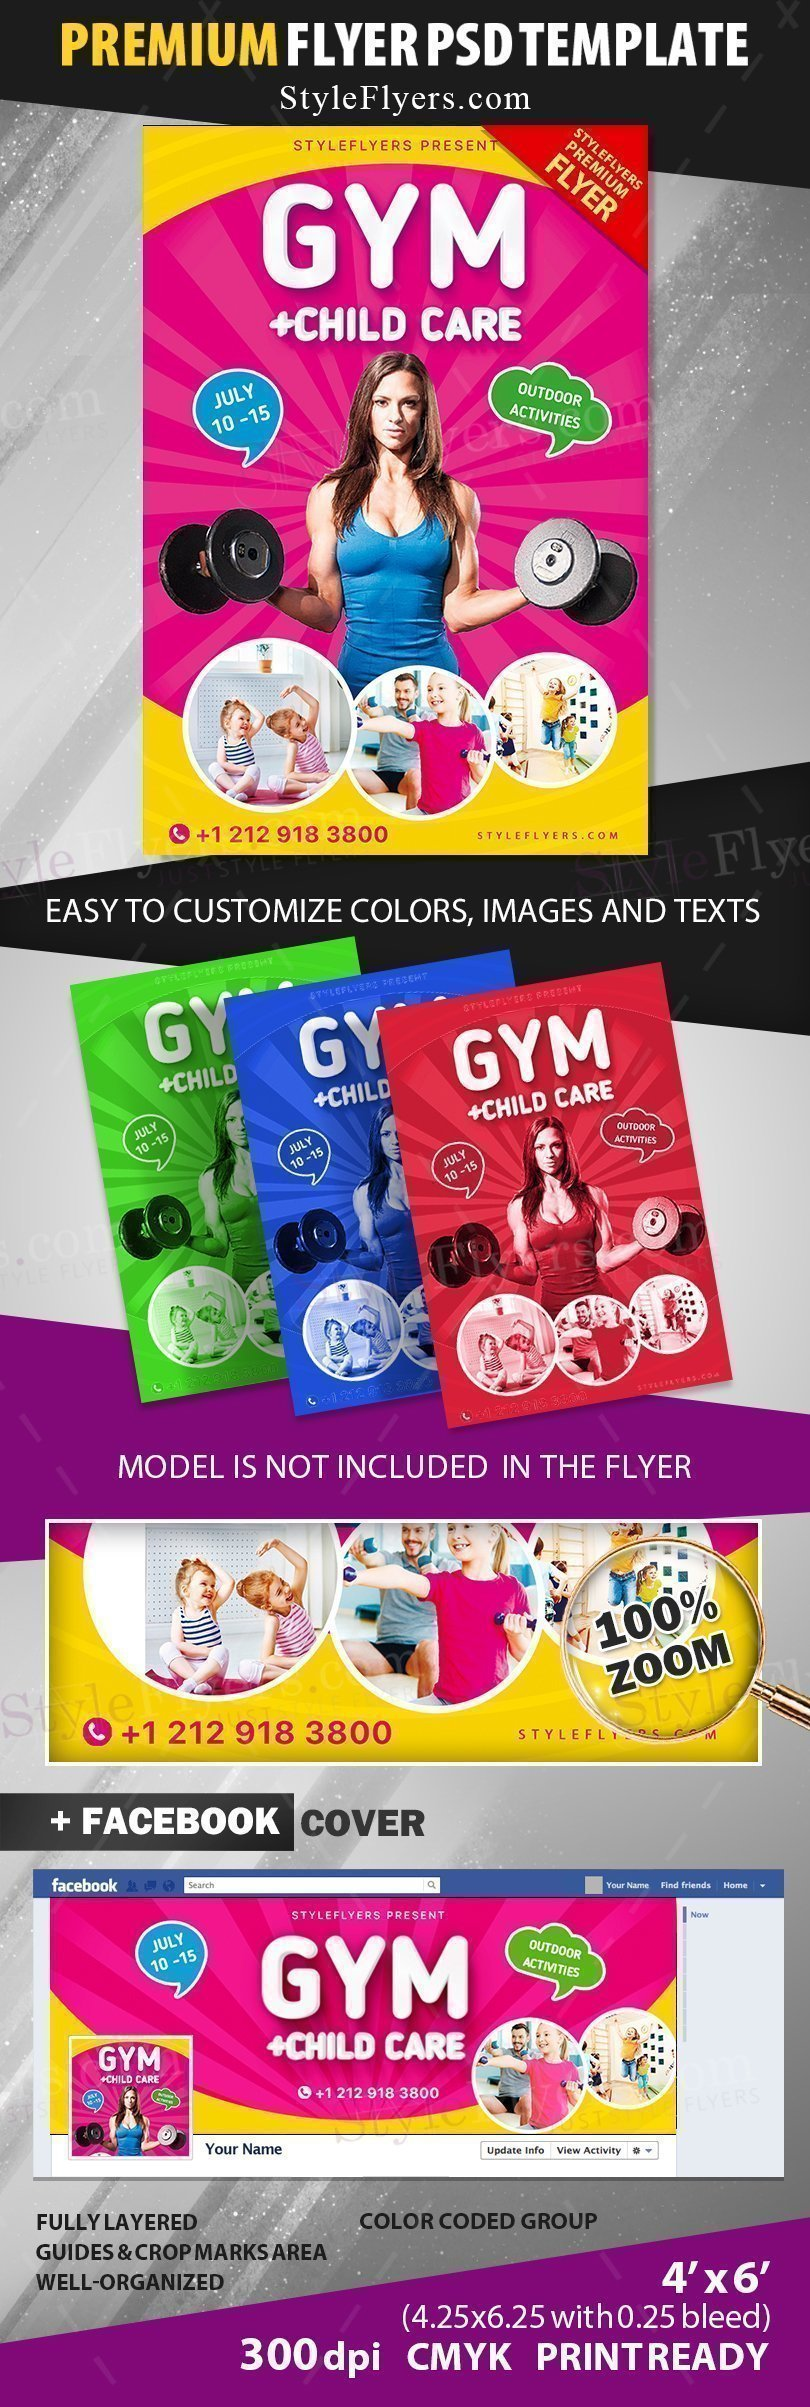 preview_gym+ child care_psd_flyer